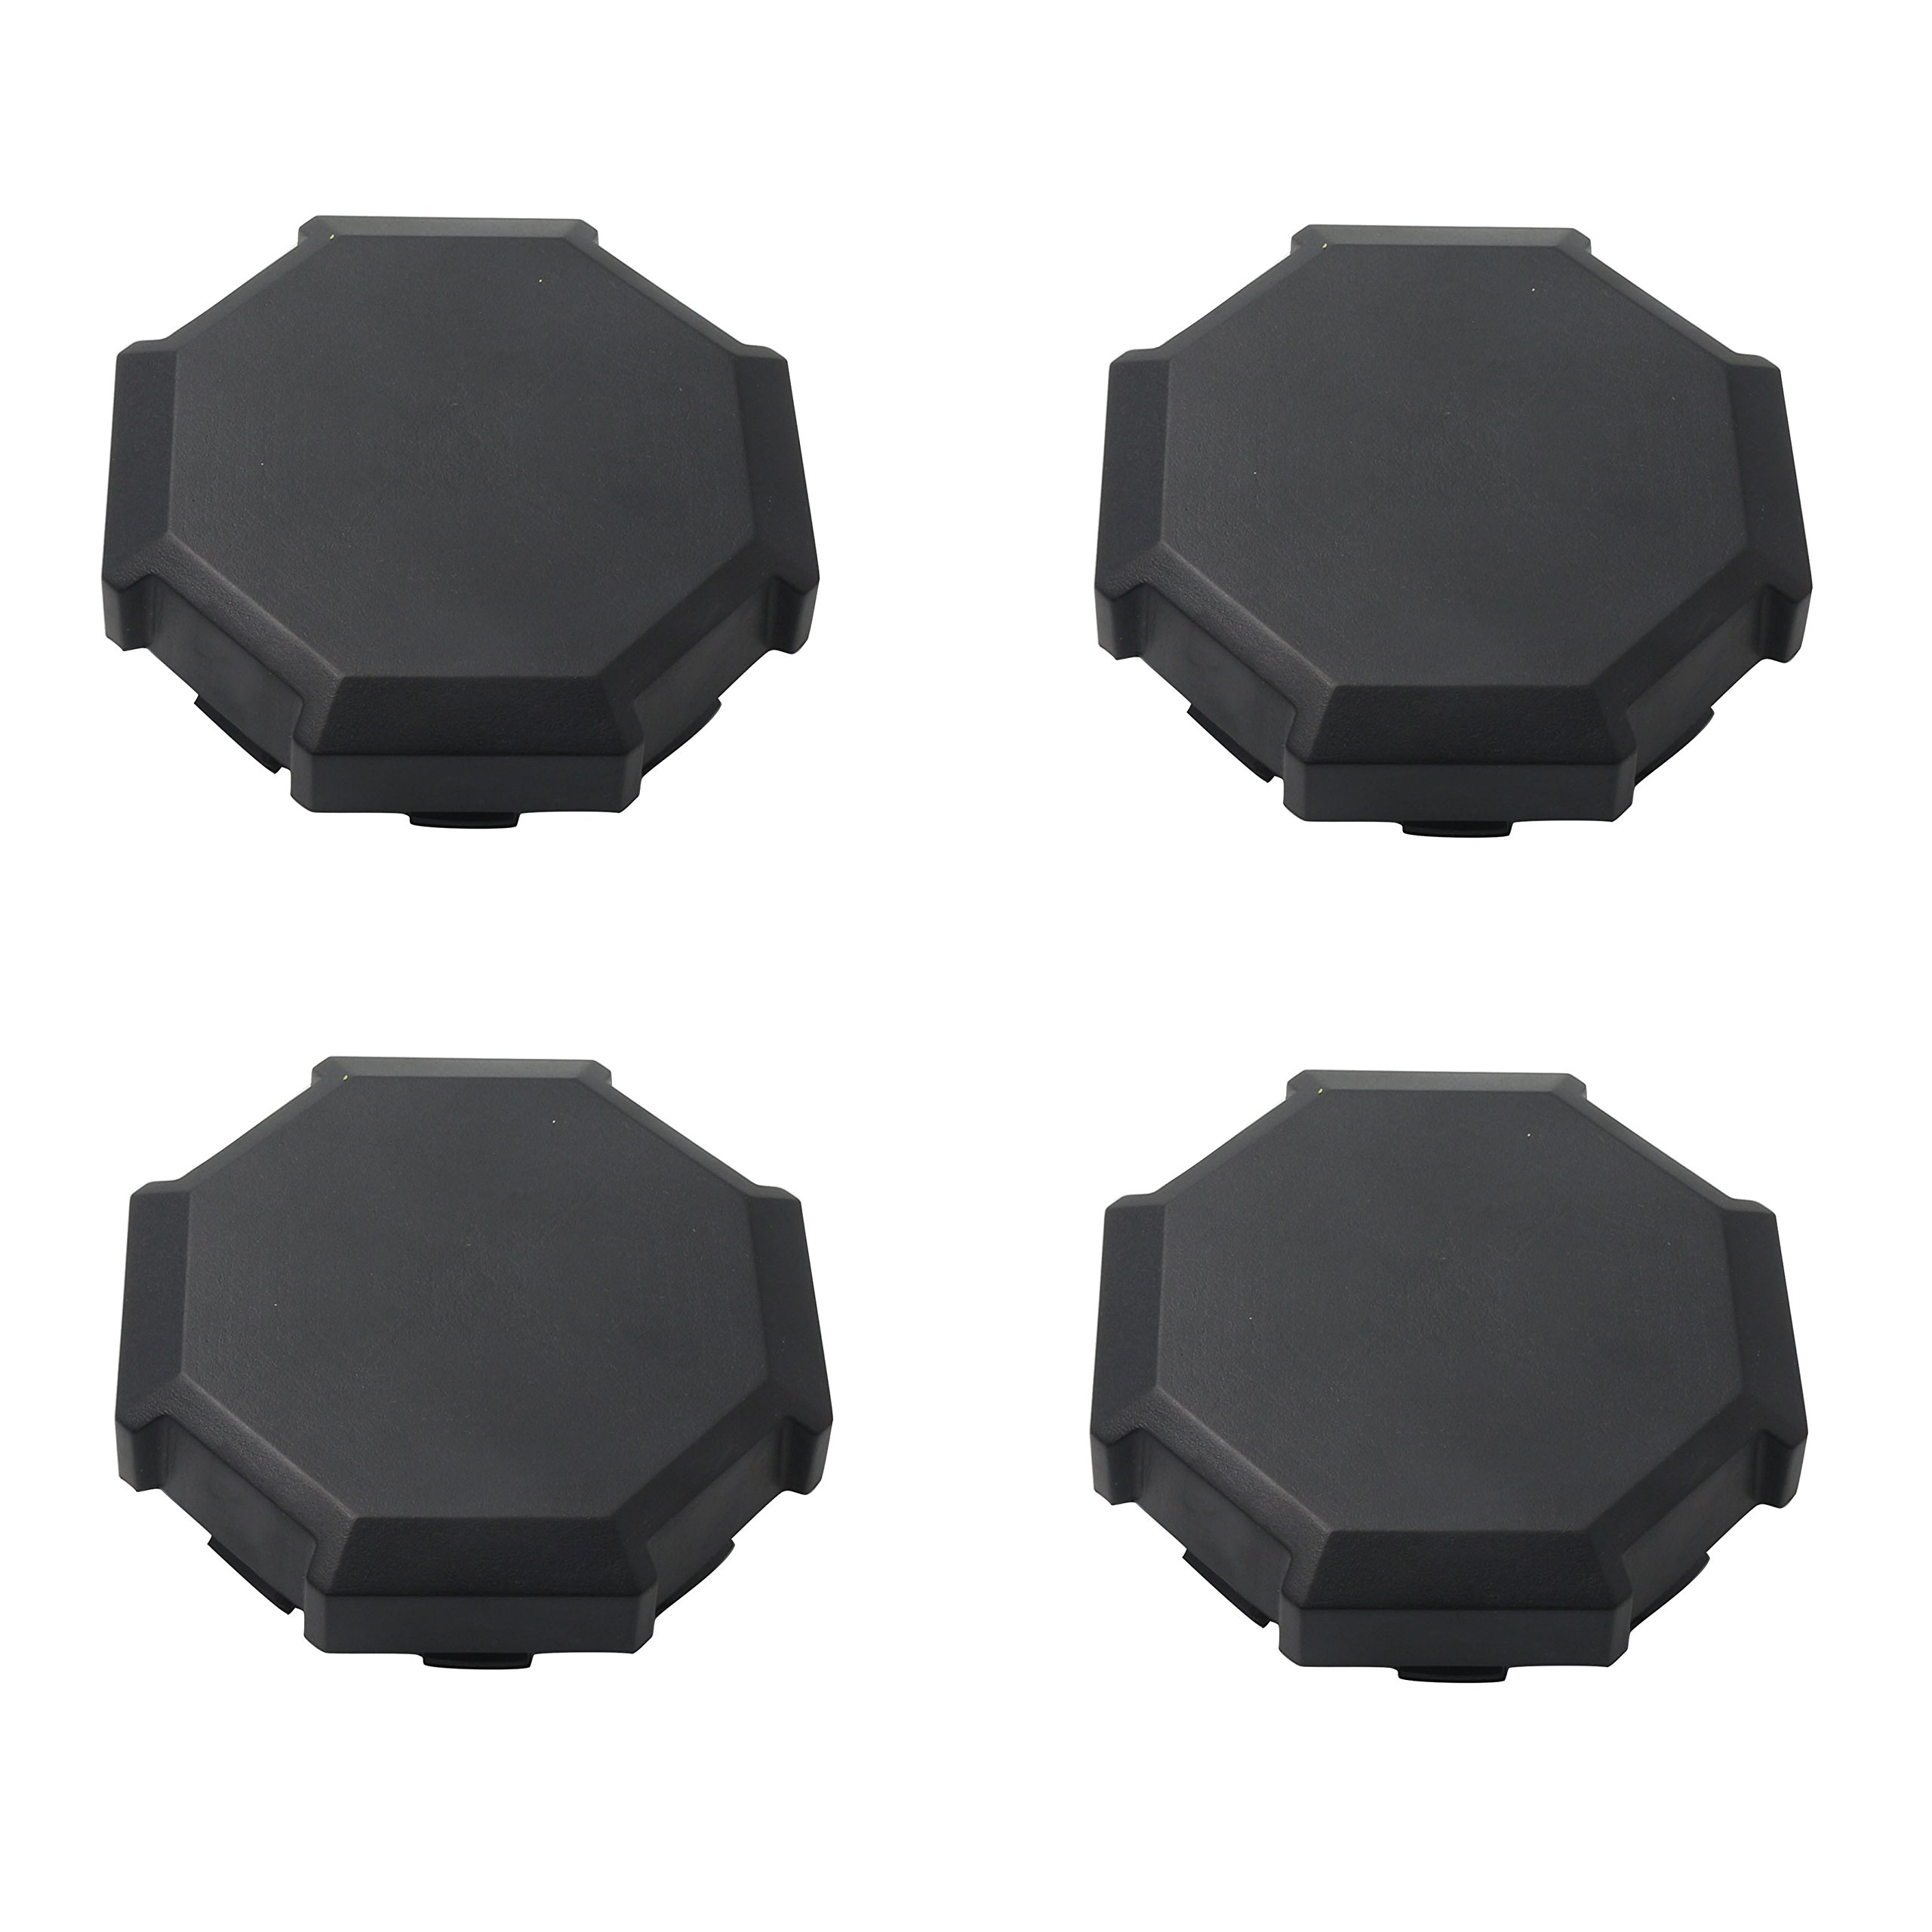 CPOWACE Pack 4 Wheel Tire Rim Hub Cap Cover For Polaris RZR 900 100 XP 4 1522216-655 (Black)